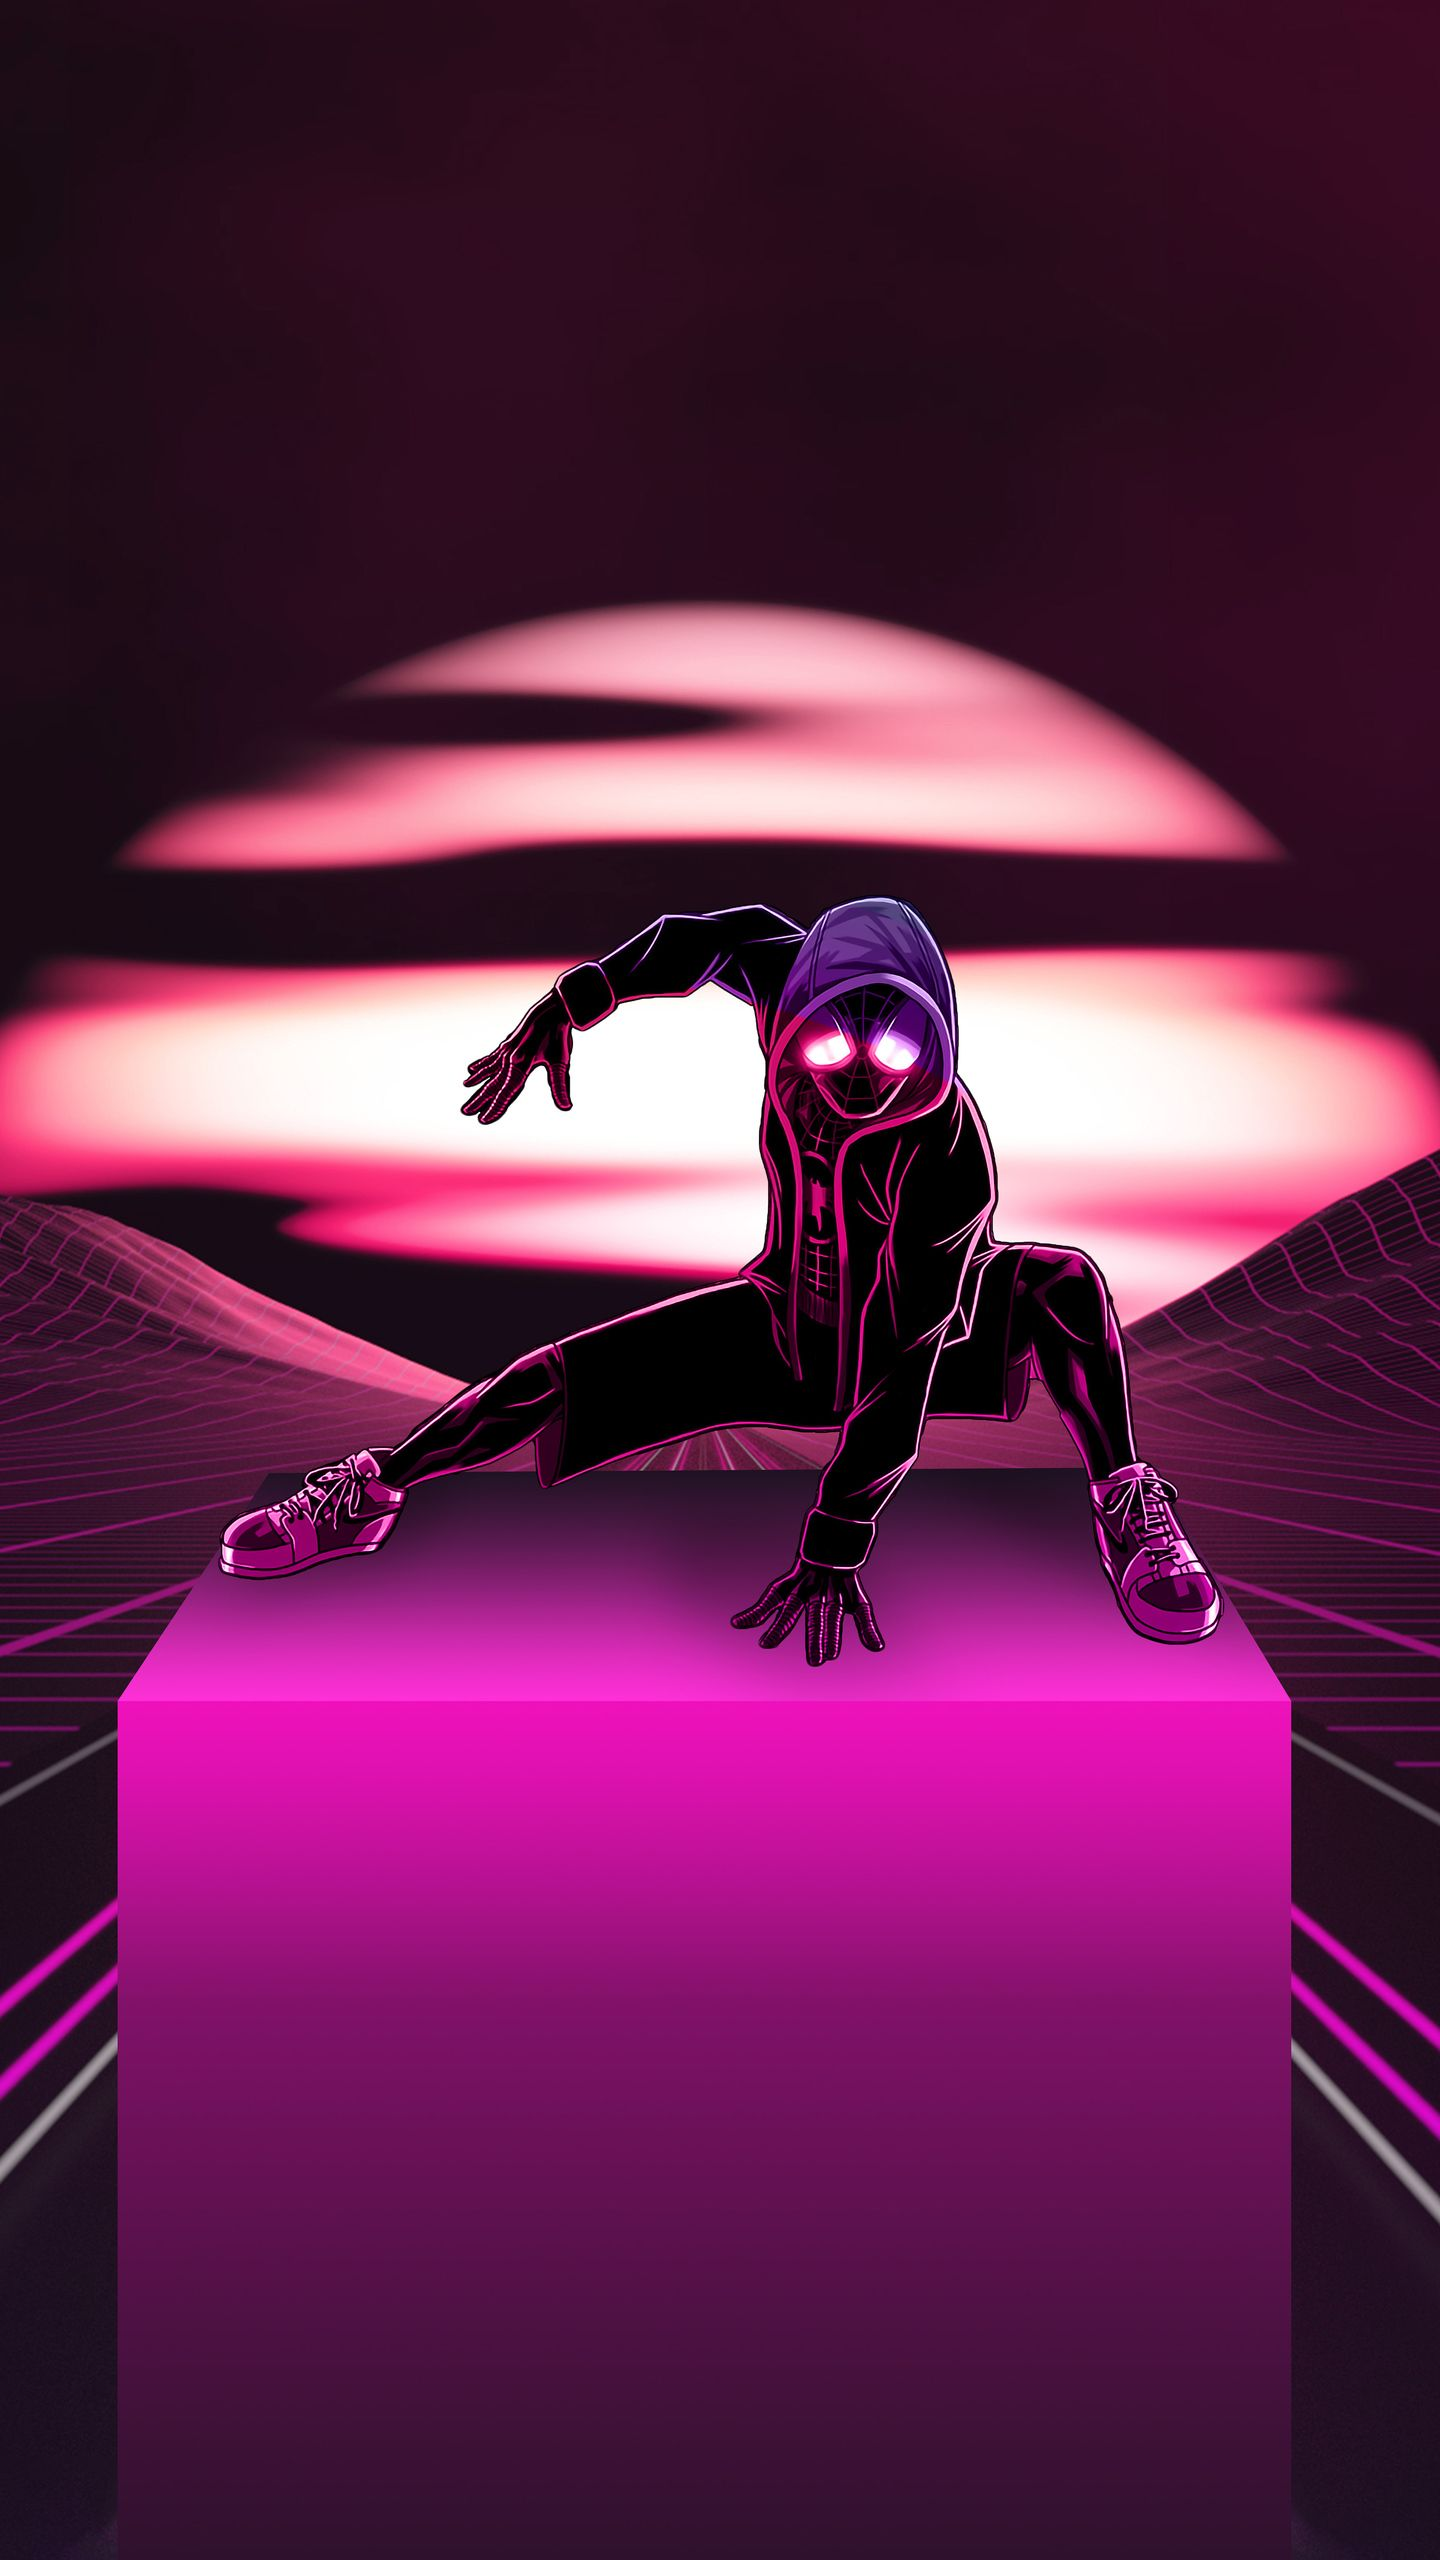 WHICH SPIDERMAN INTO THE SPIDERVERSE CHARACTER ARE YOU